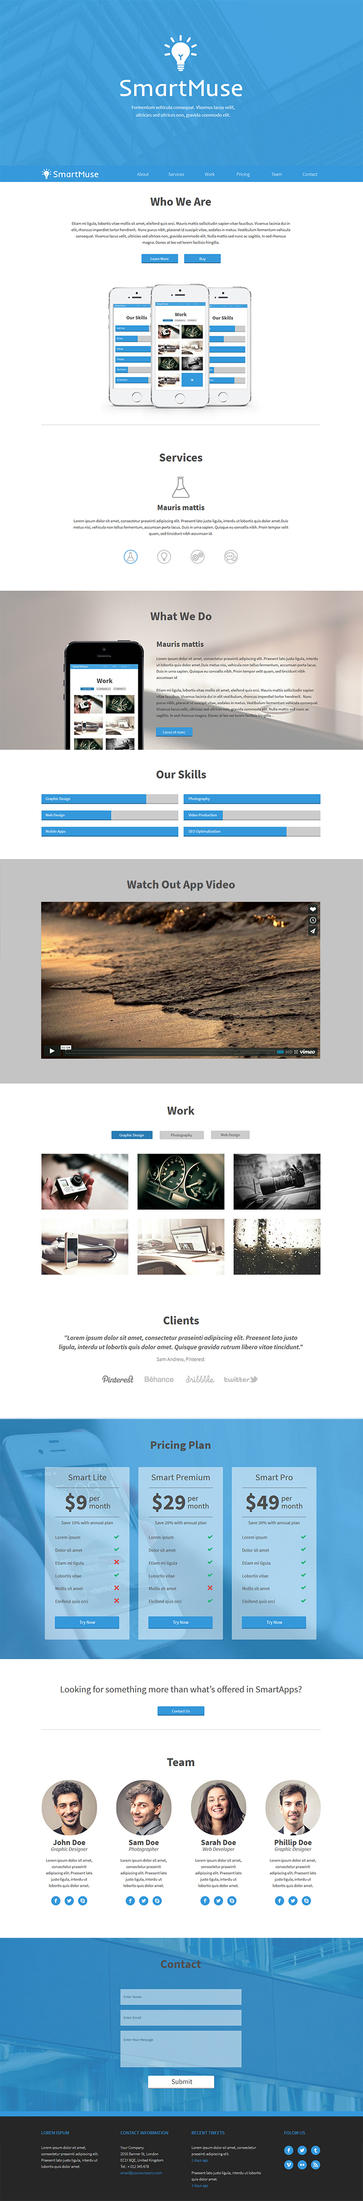 SmartMuse - One Page Parallax Muse Template by PixelladyArt